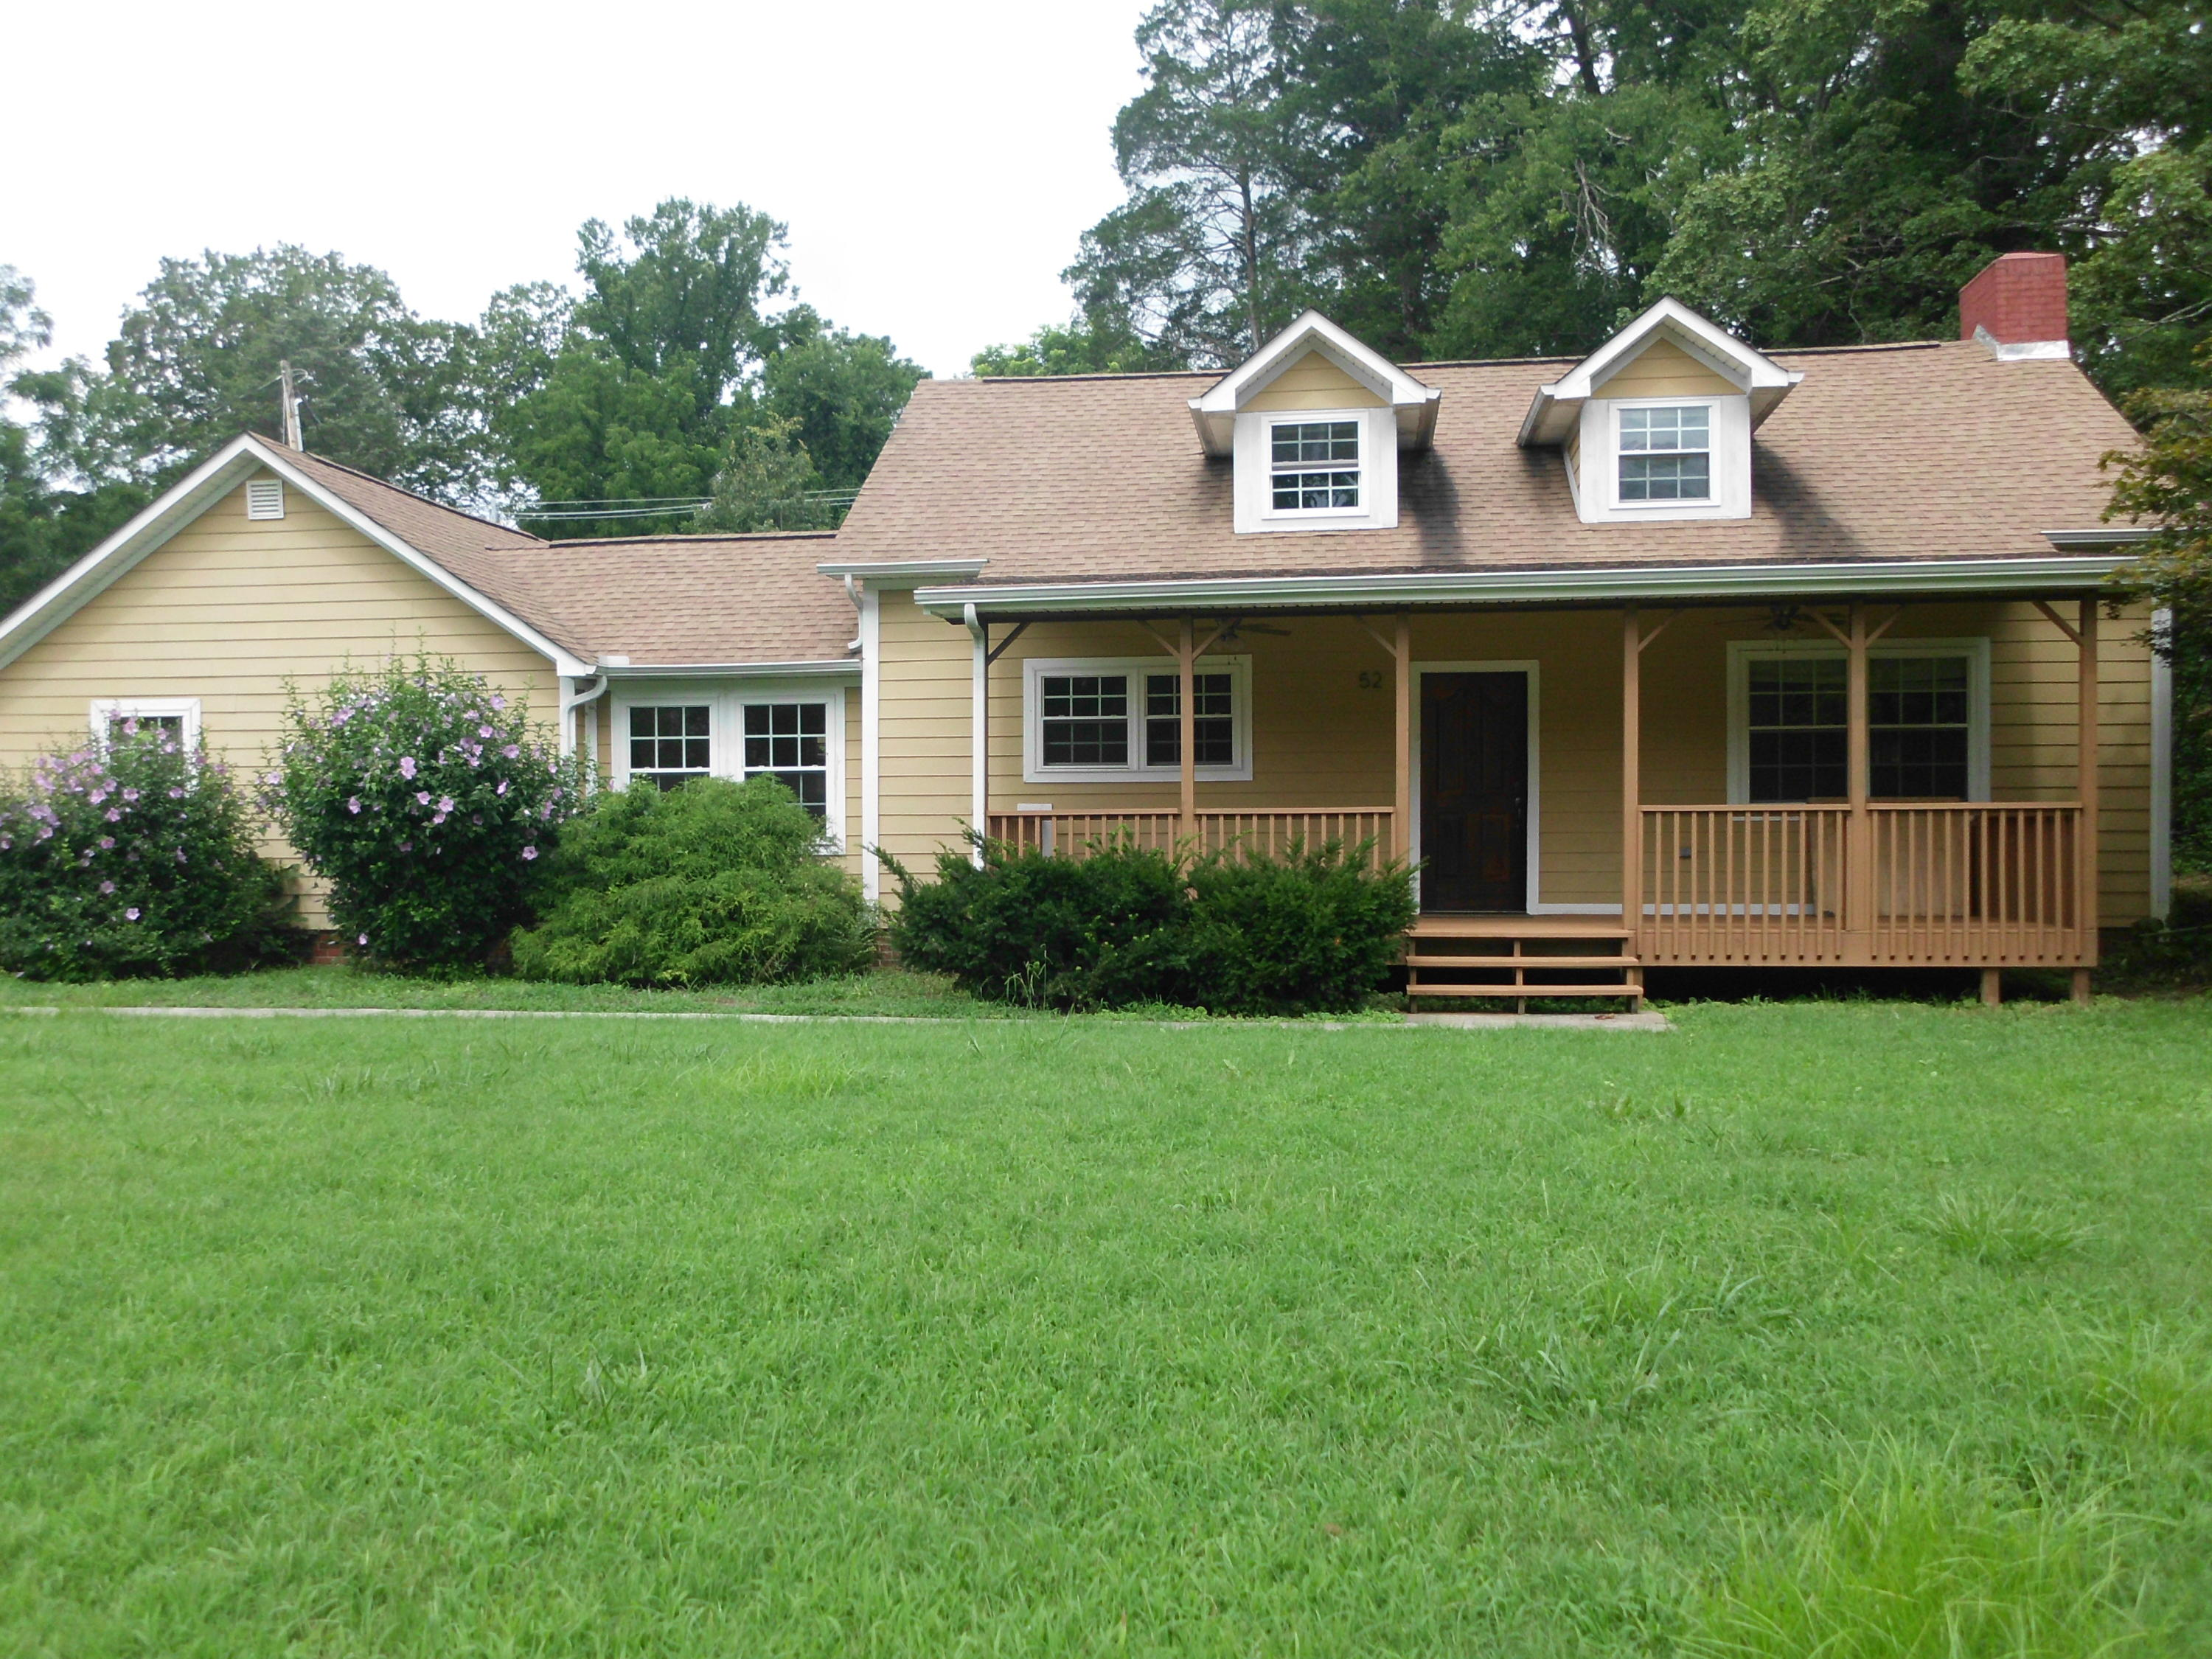 20190716224851453212000000-o Norris anderson county homes for sale